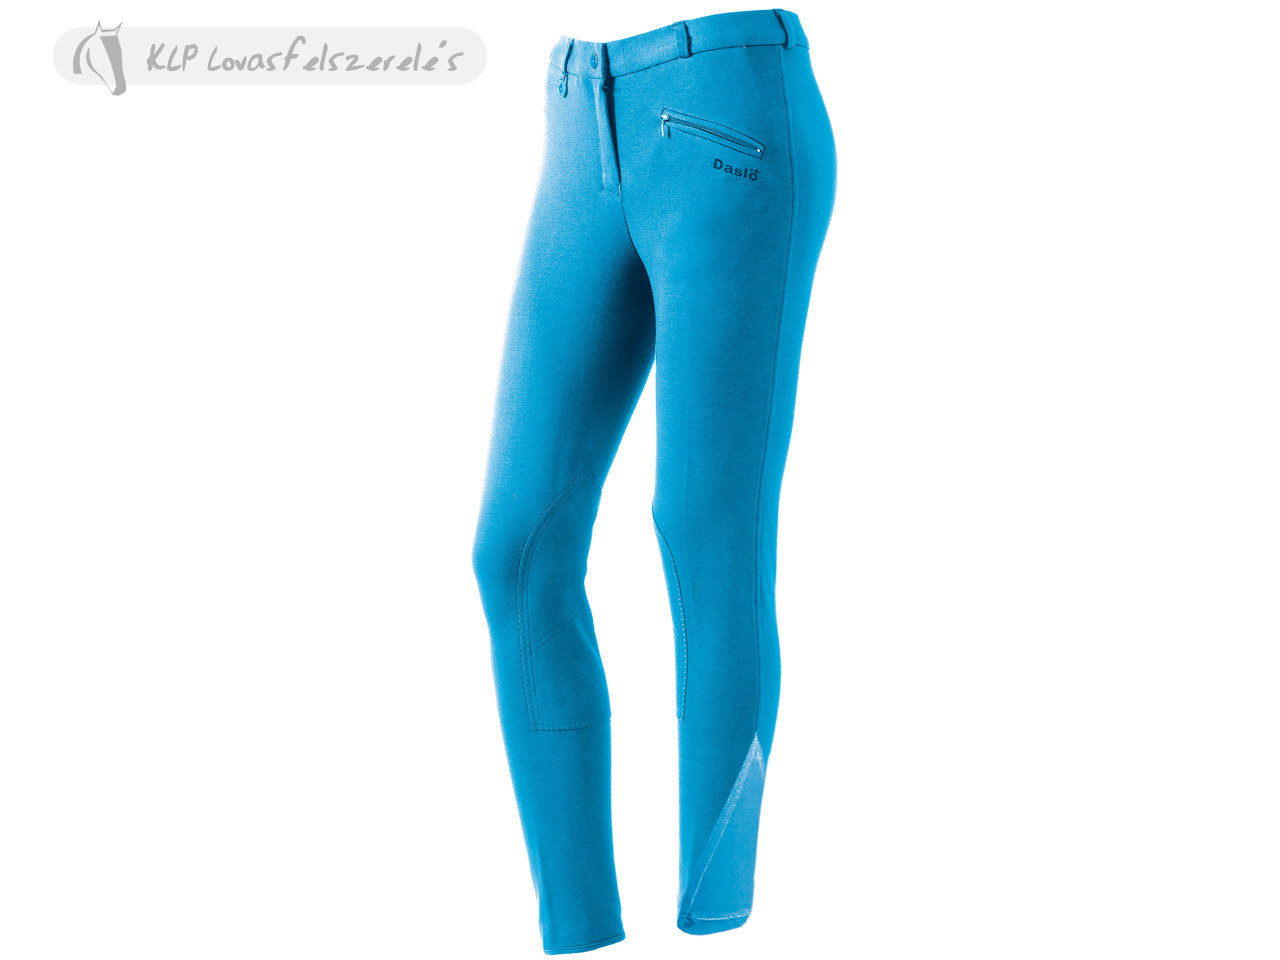 Daslö Ladies Breeches With Suede Knee Patch